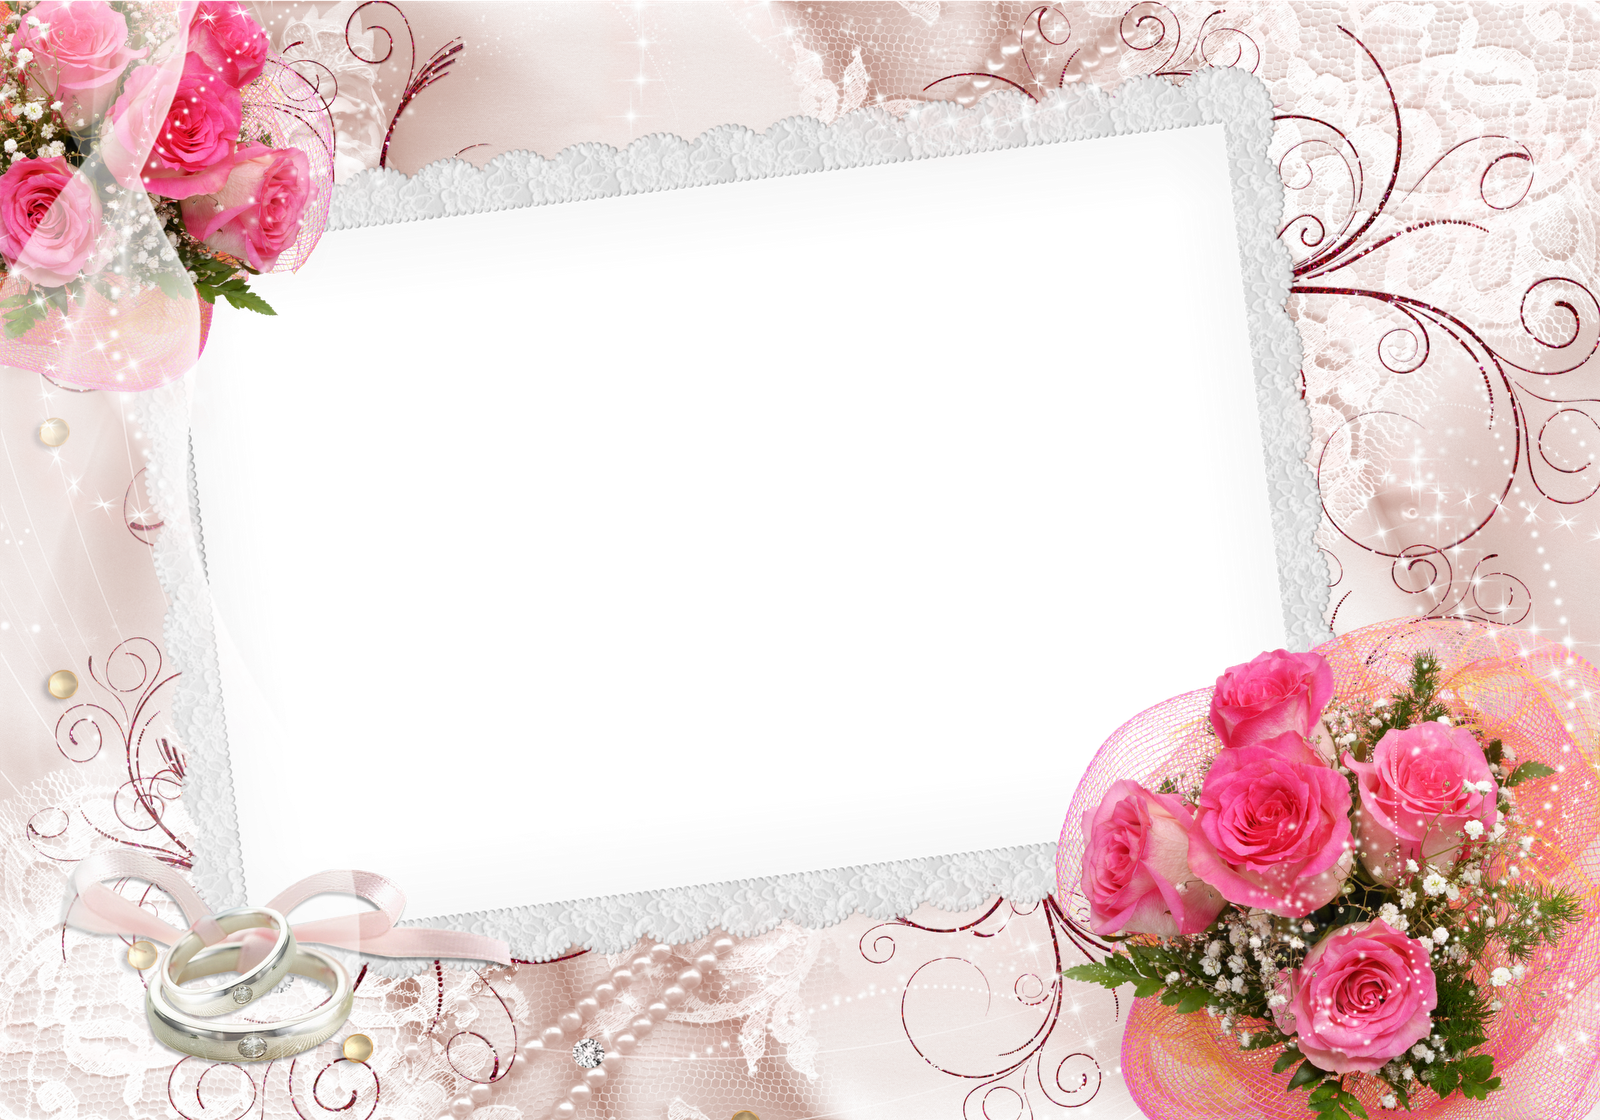 Png Photo Frame Clipart Best image #24582